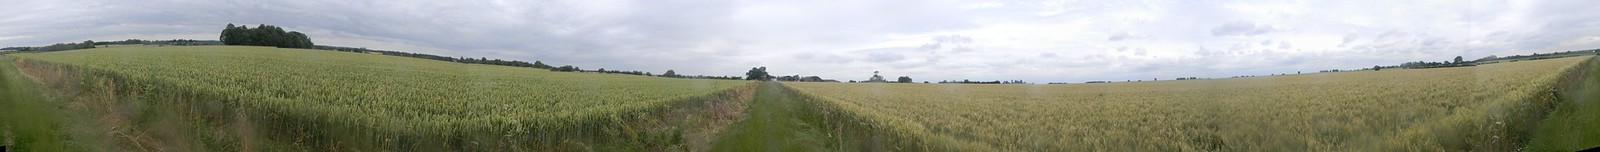 360 deg wheatfield Sawbridgeworth to Bishops Stortford